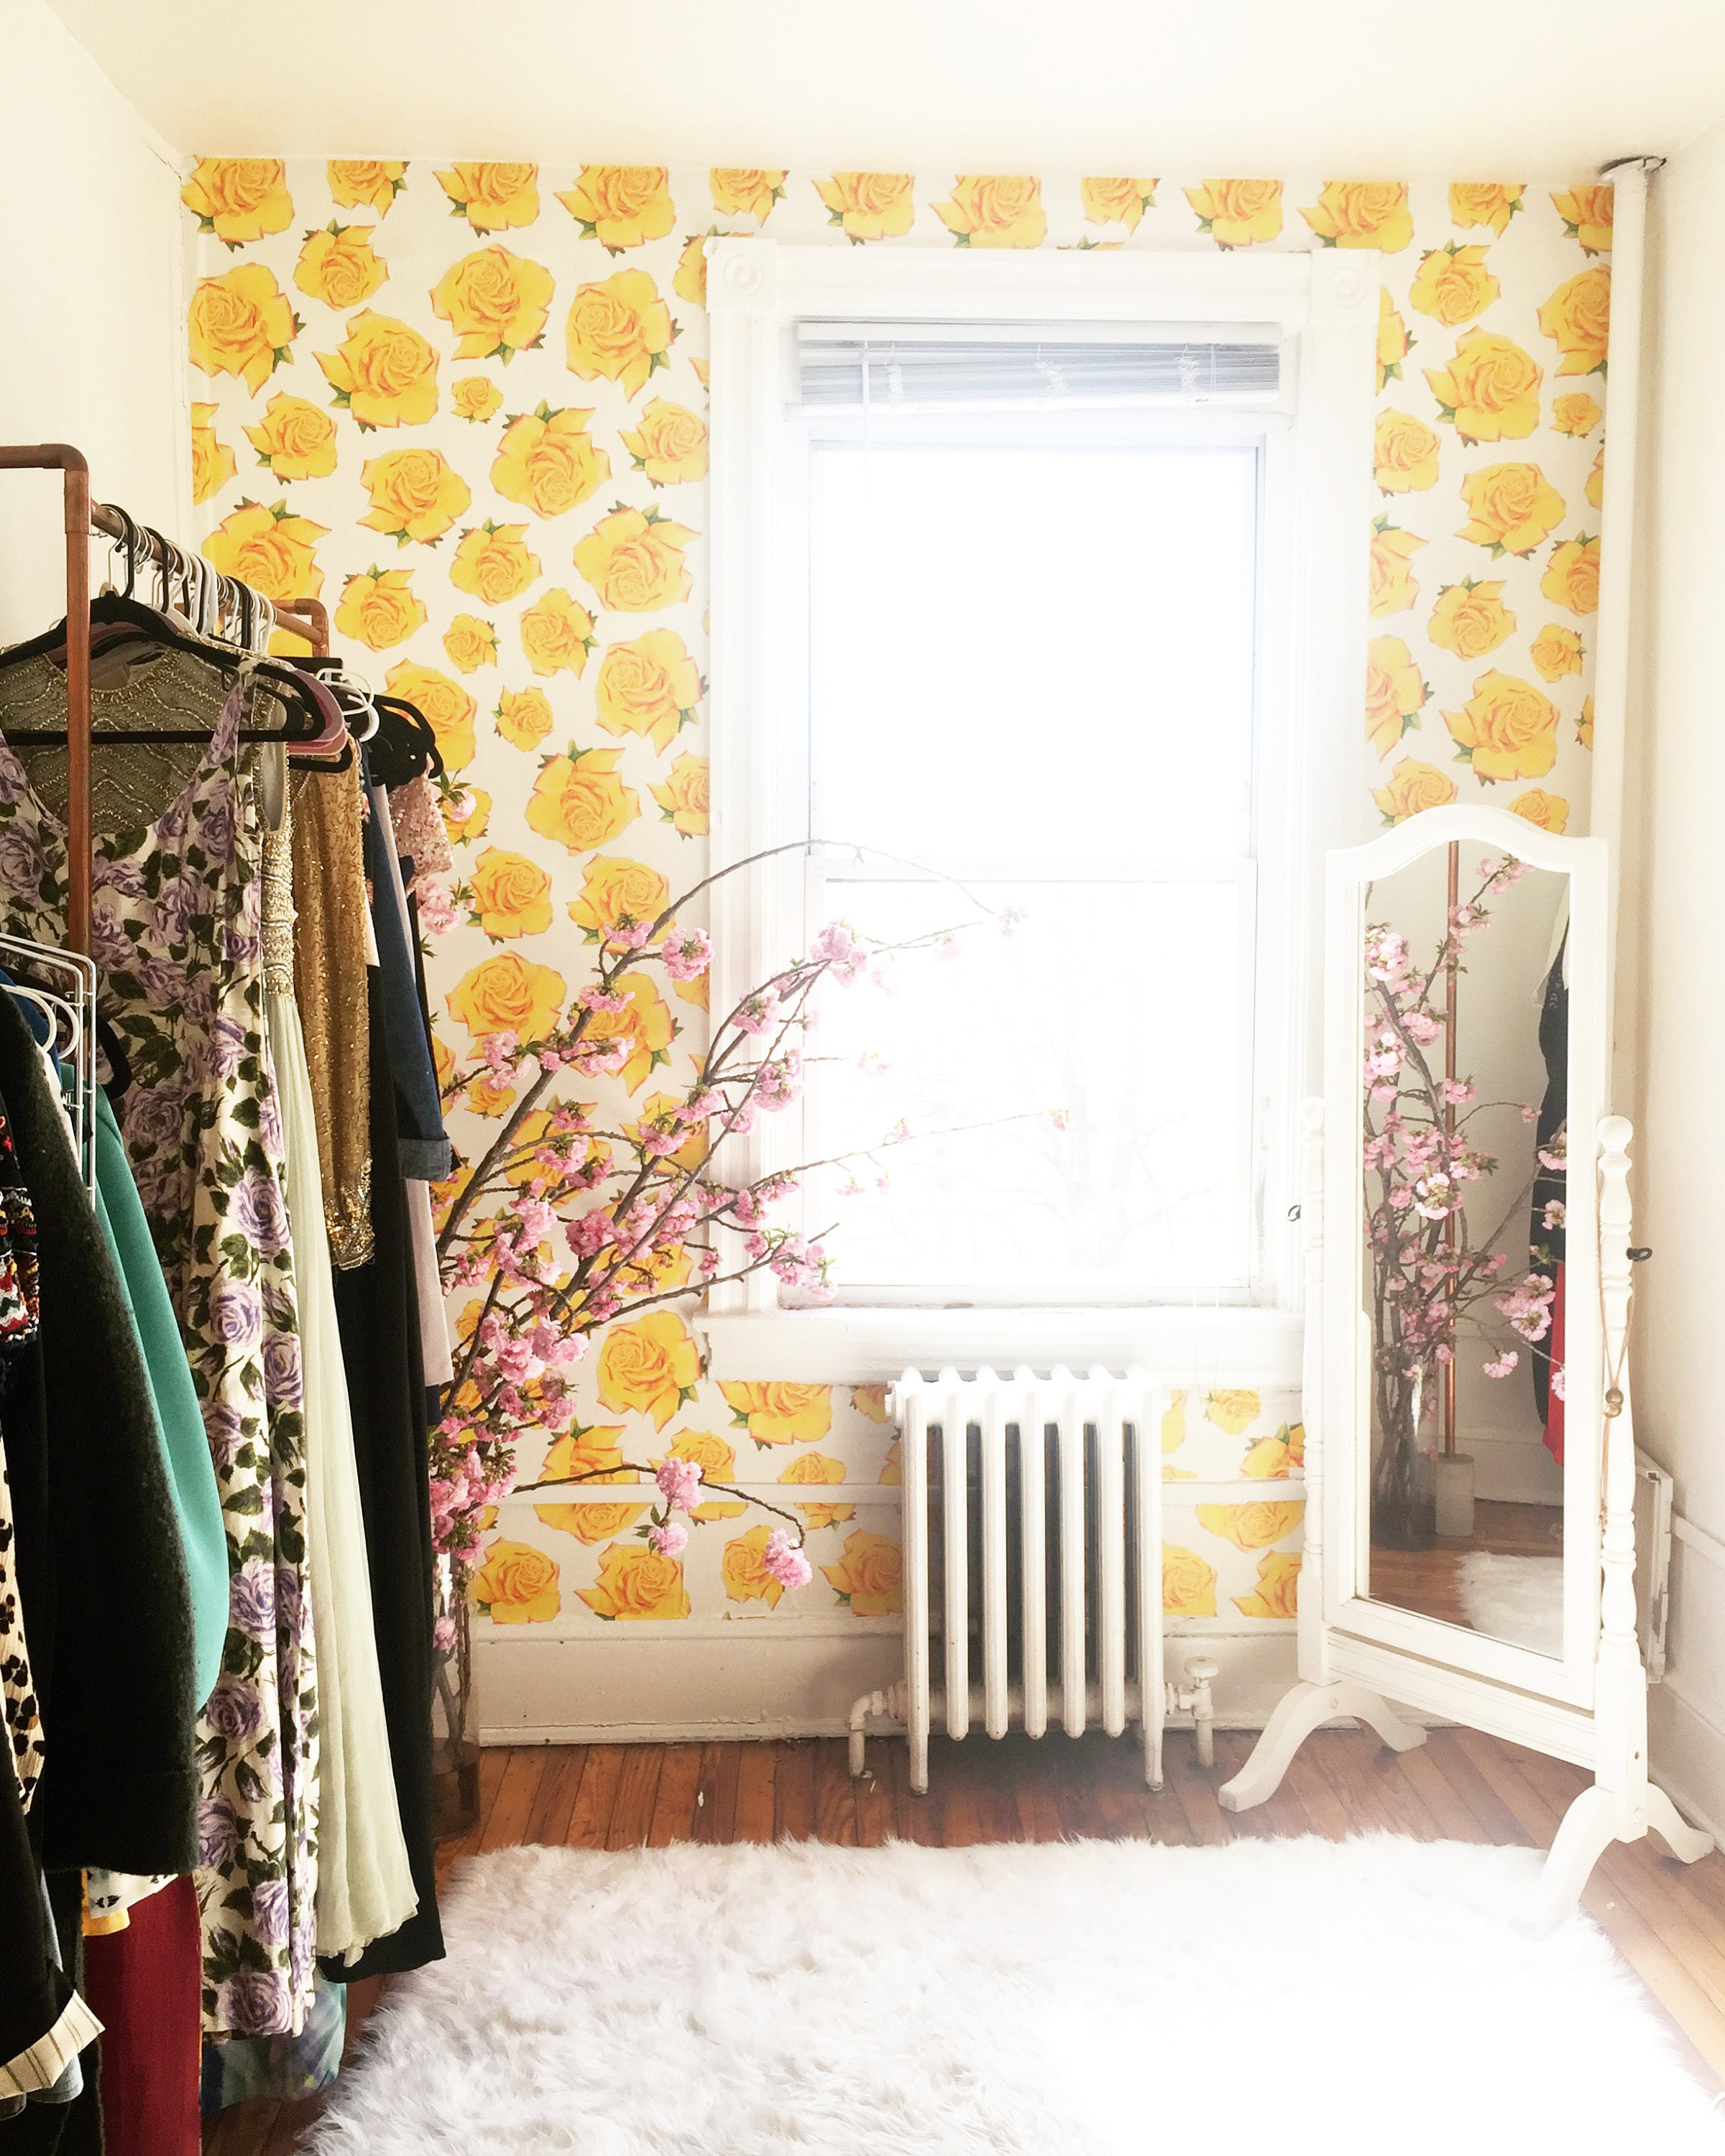 Wallpaper For Renters: Yellow Rose Wallpaper / Removable / Perfect For Renters And